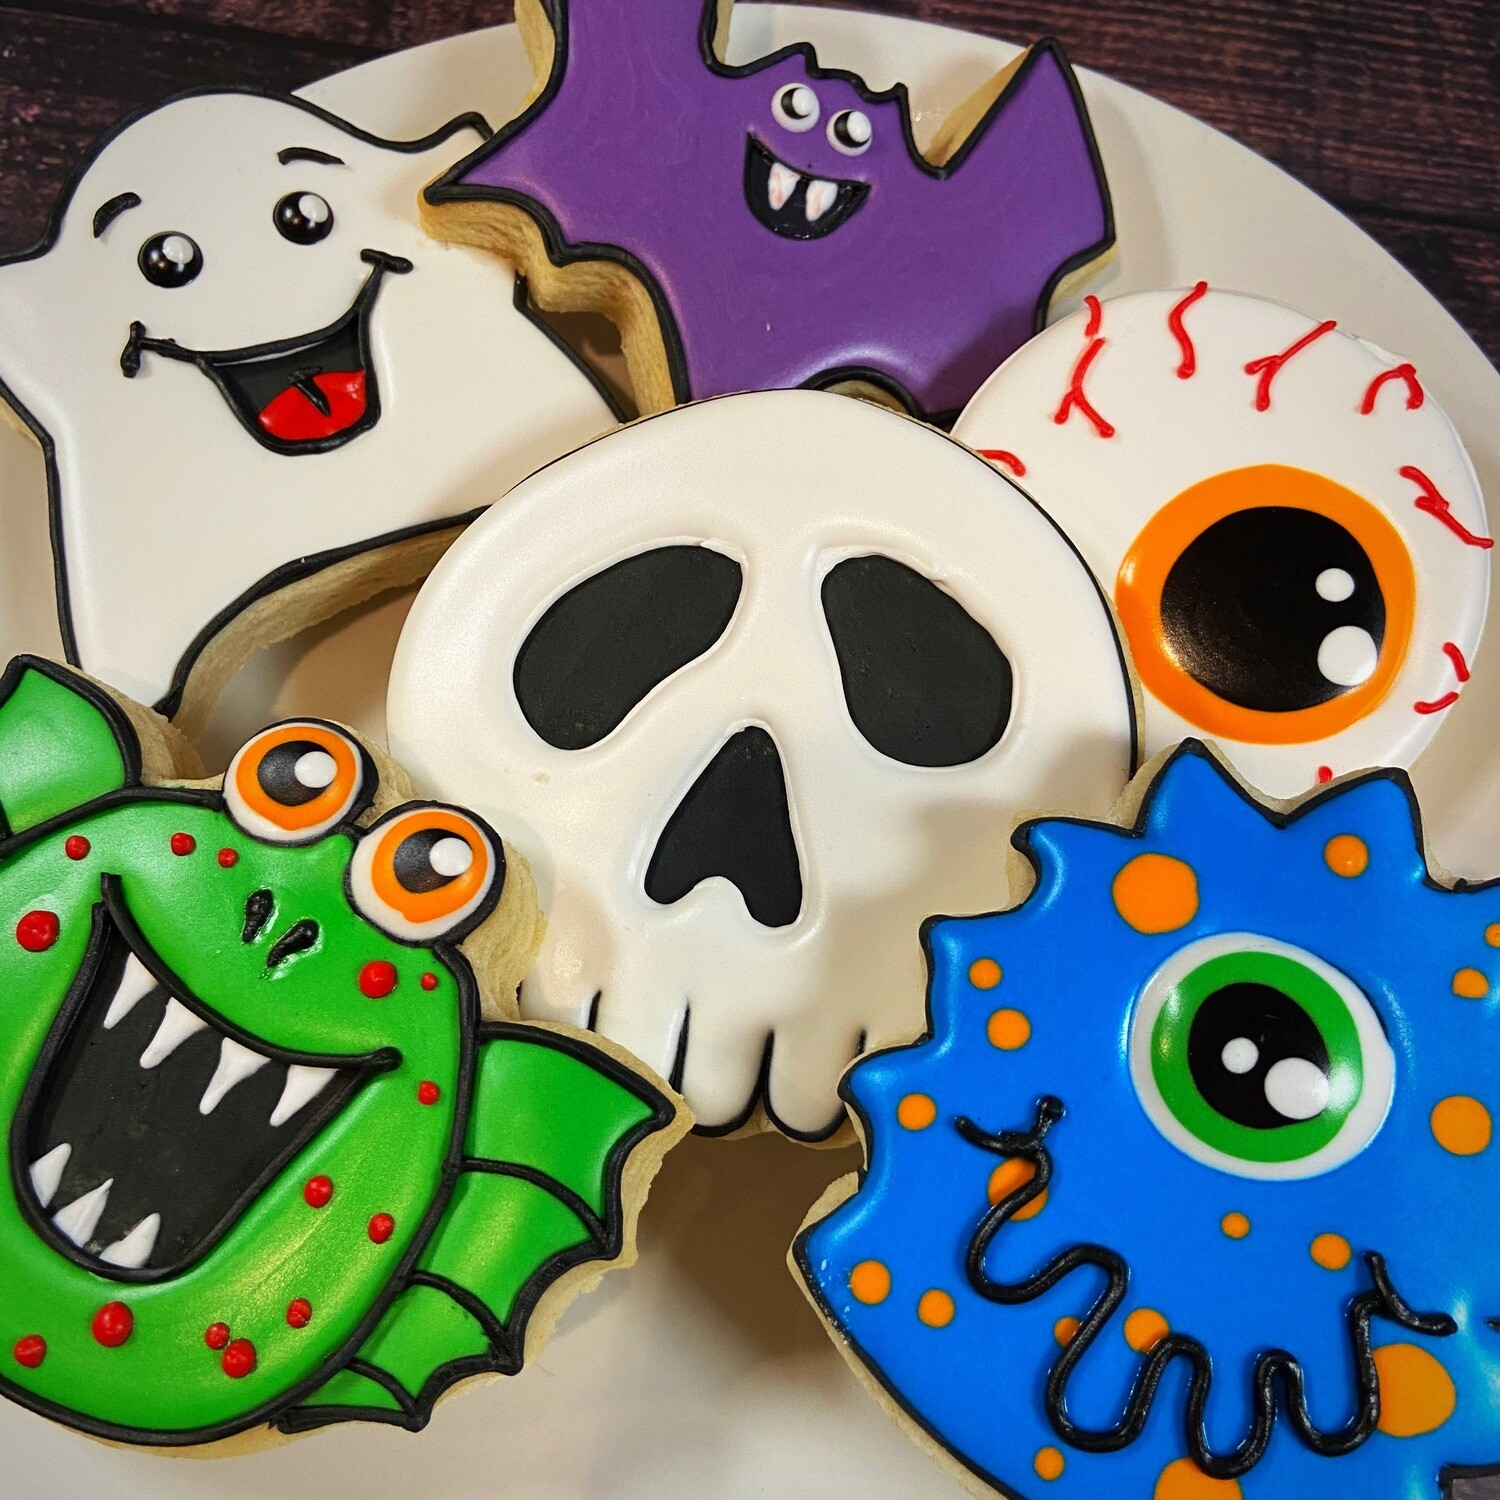 'Monsters Decorating Workshop - SATURDAY, OCTOBER 24th at 7 p.m. (THE COOKIE DECORATING STUDIO)